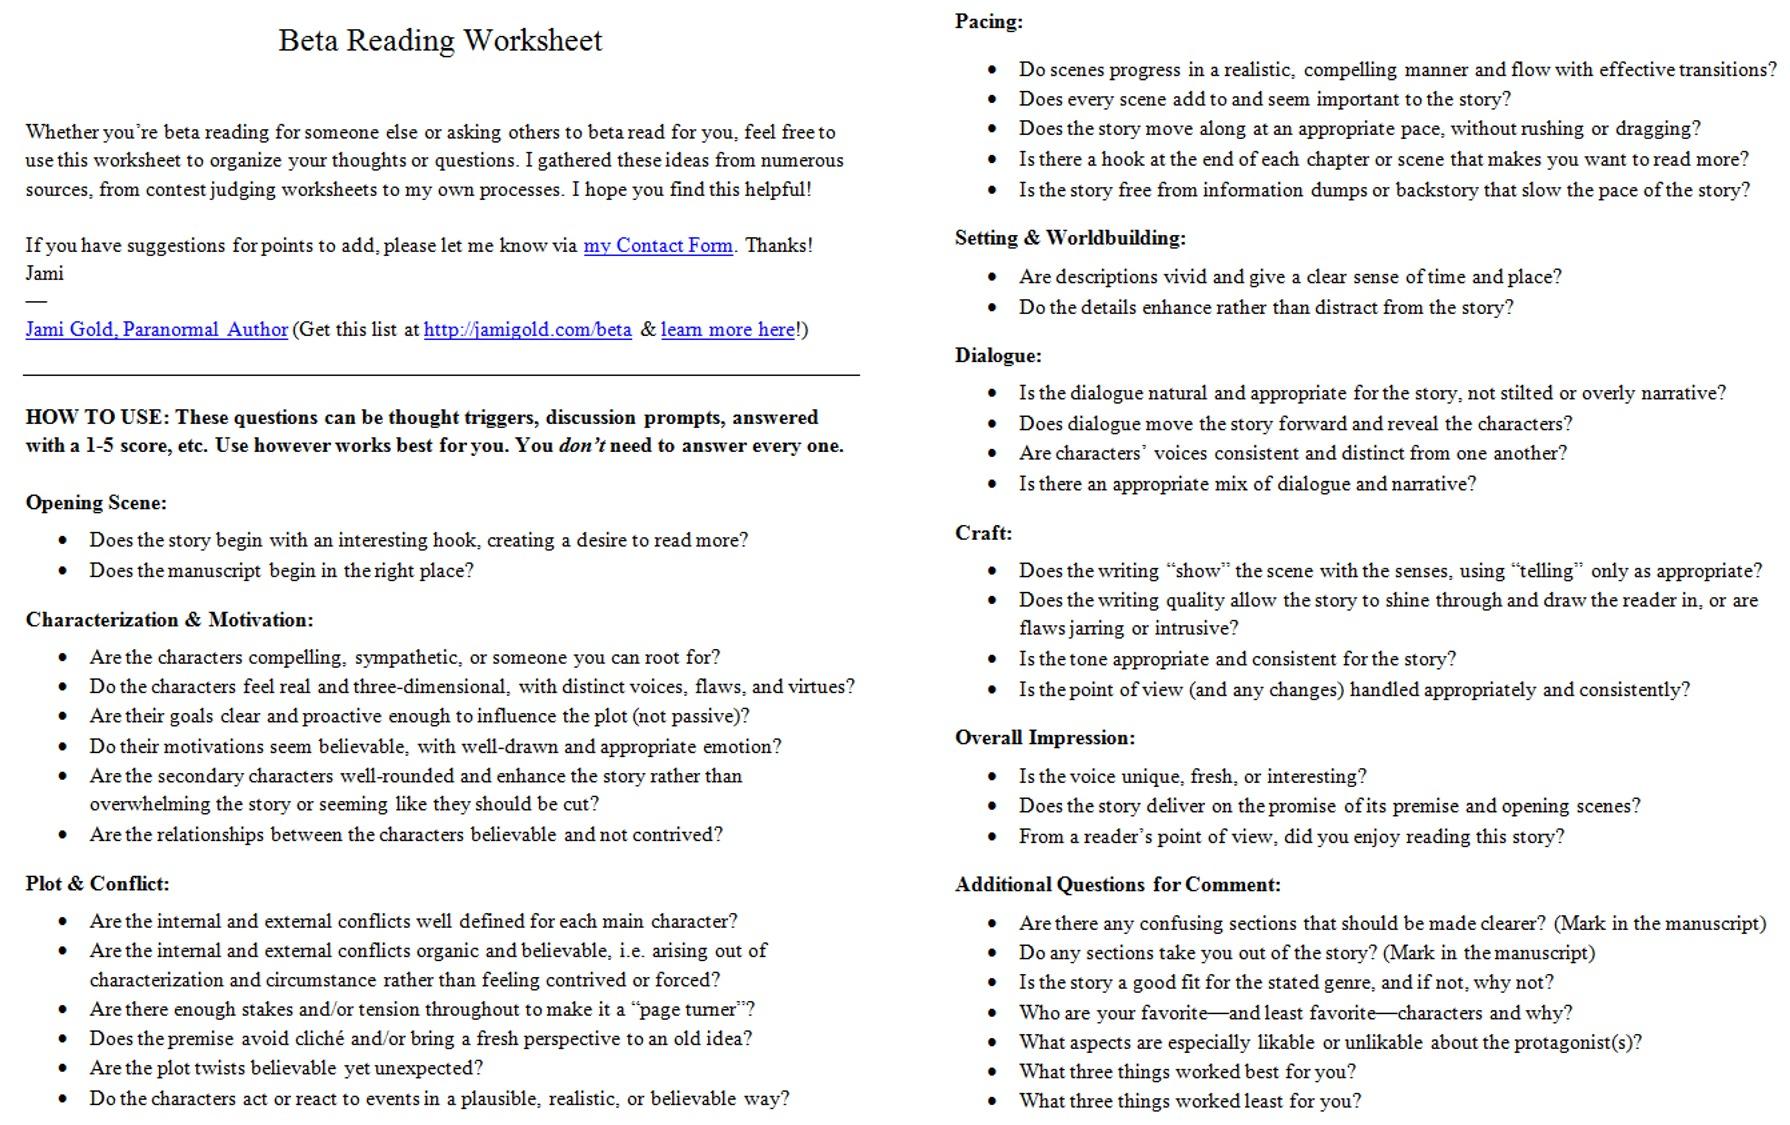 Weirdmailus  Seductive Worksheets For Writers  Jami Gold Paranormal Author With Glamorous Screen Shot Of The Twopage Beta Reading Worksheet With Charming Swimmy Worksheets Also Verb Tenses Worksheets In Addition Protons Neutrons Electrons Practice Worksheet And Common Core Grade  Math Worksheets As Well As Math Worksheets  Grade Additionally Solving Quadratic Equations By Factorisation Worksheet From Jamigoldcom With Weirdmailus  Glamorous Worksheets For Writers  Jami Gold Paranormal Author With Charming Screen Shot Of The Twopage Beta Reading Worksheet And Seductive Swimmy Worksheets Also Verb Tenses Worksheets In Addition Protons Neutrons Electrons Practice Worksheet From Jamigoldcom